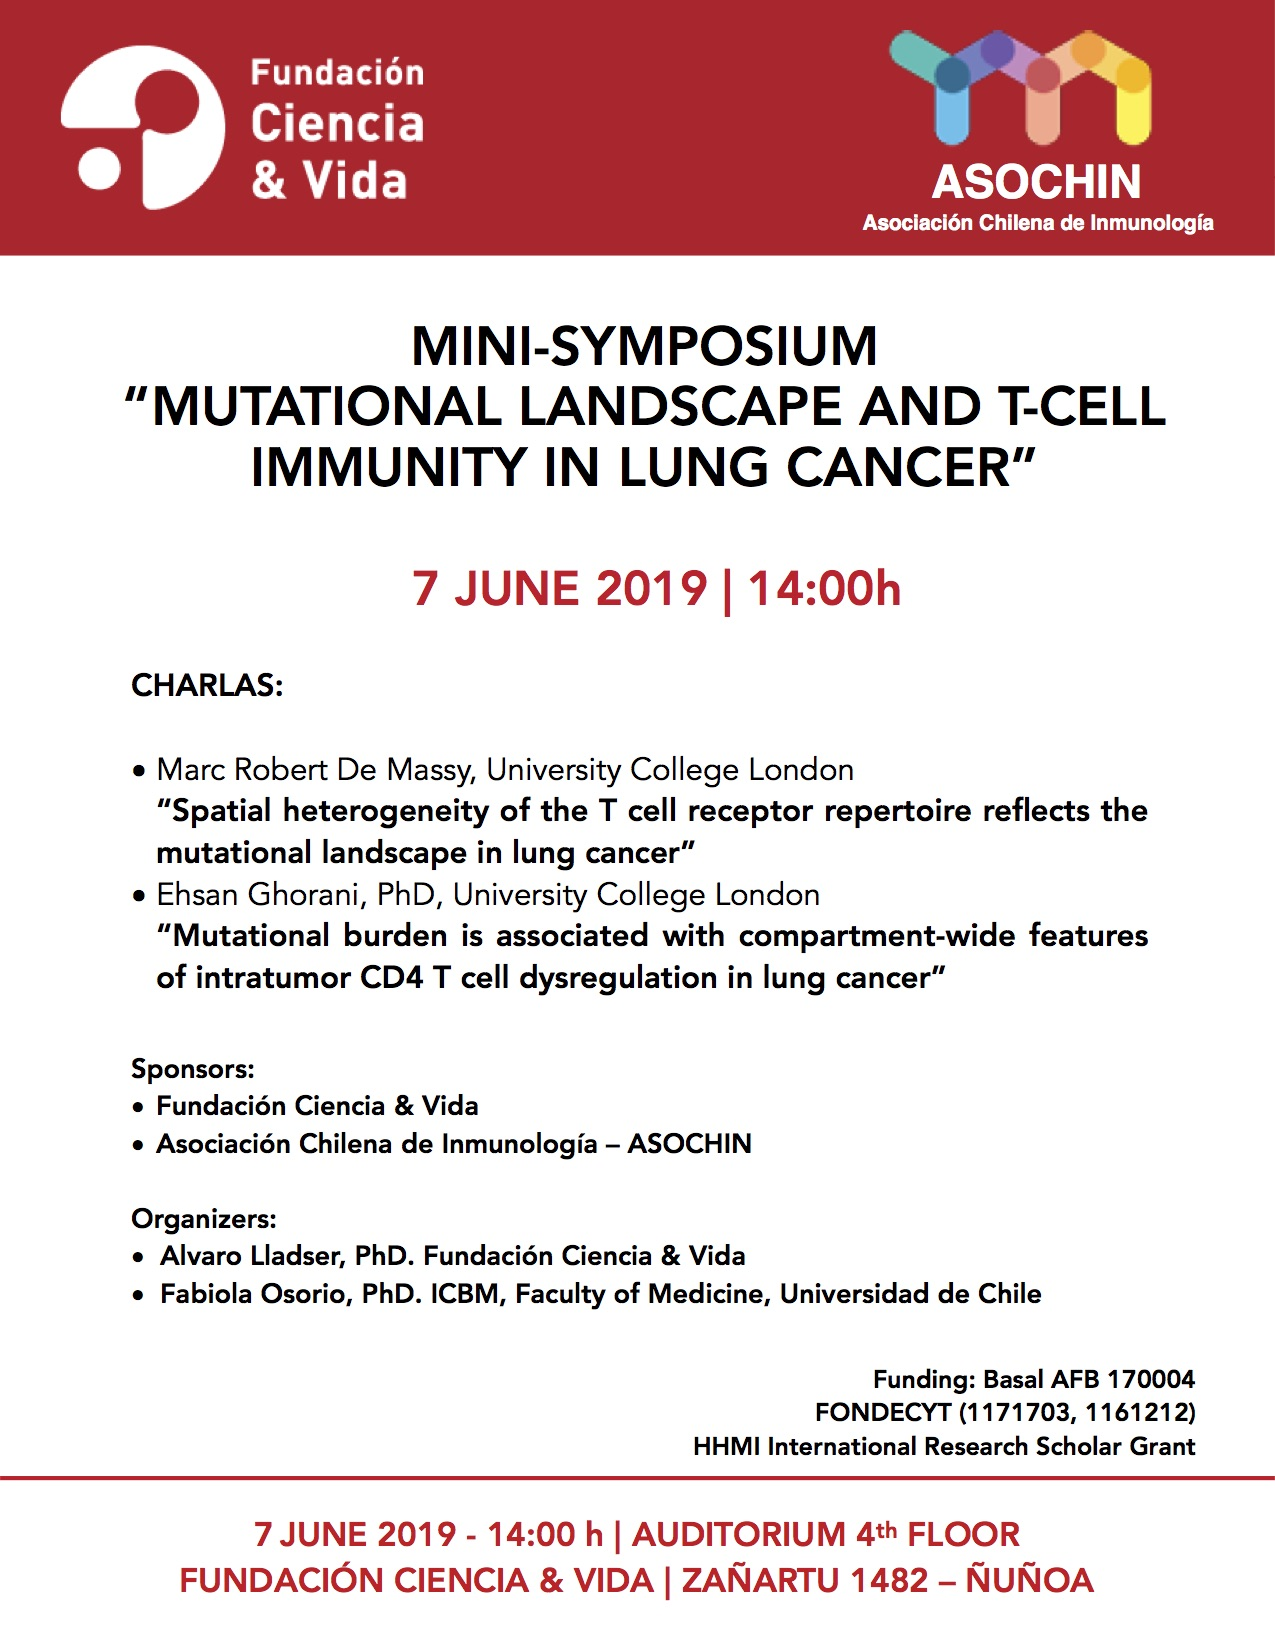 """Invitación Mini-Symposium """"Mutational landscape and T cell immunity in lung cancer graphic"""